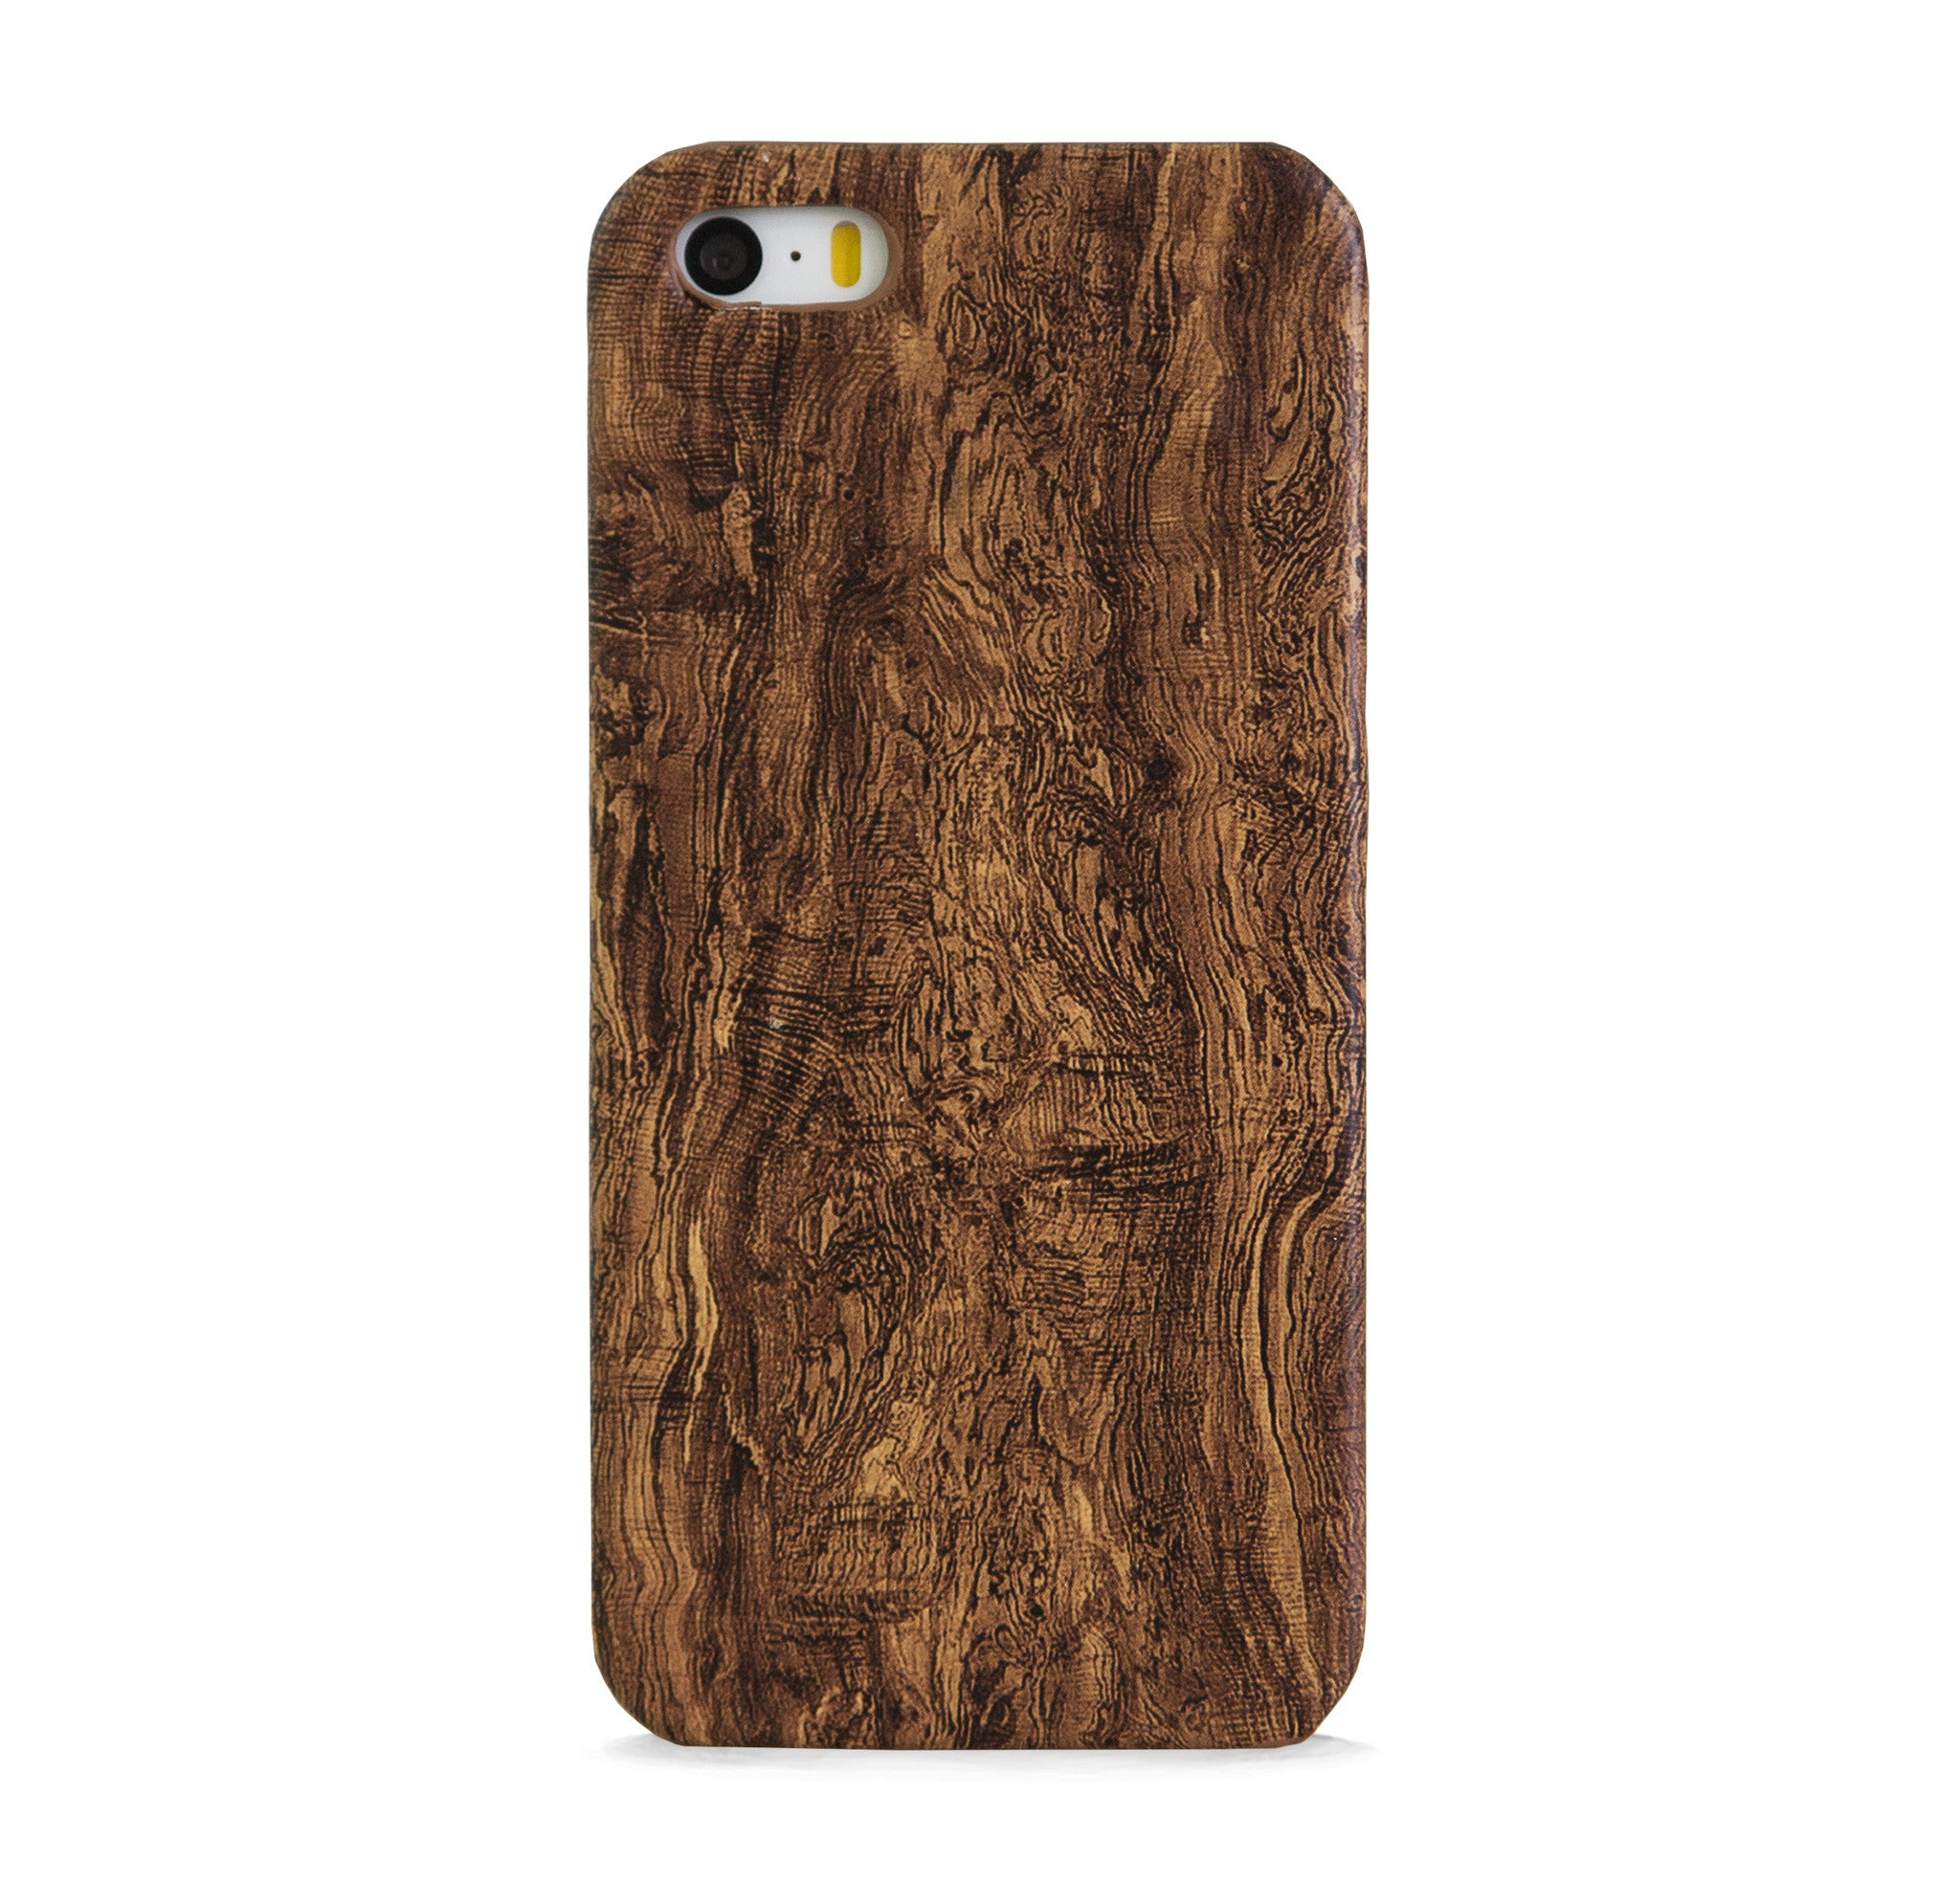 FAUX WOOD DESIGN DARK IPHONE 5/5S CASE